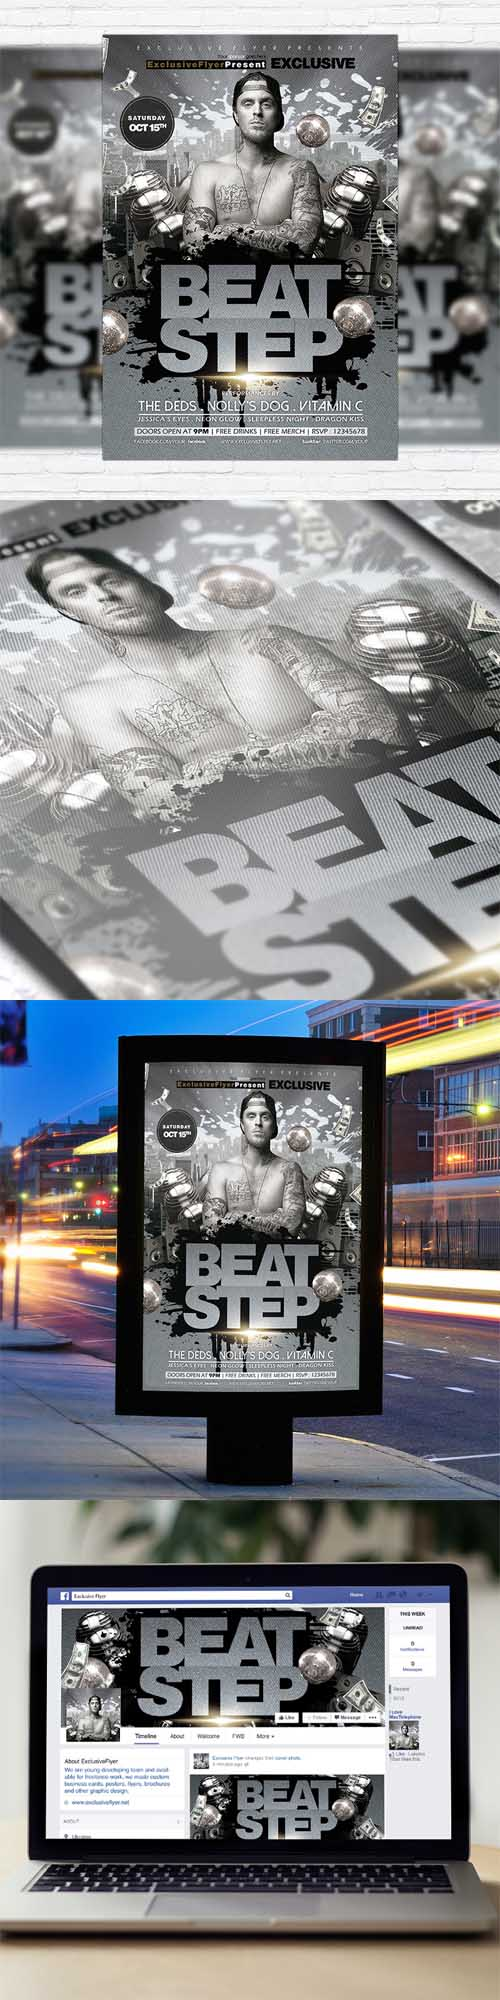 Flyer Template - Beat Step + Facebook Cover 2